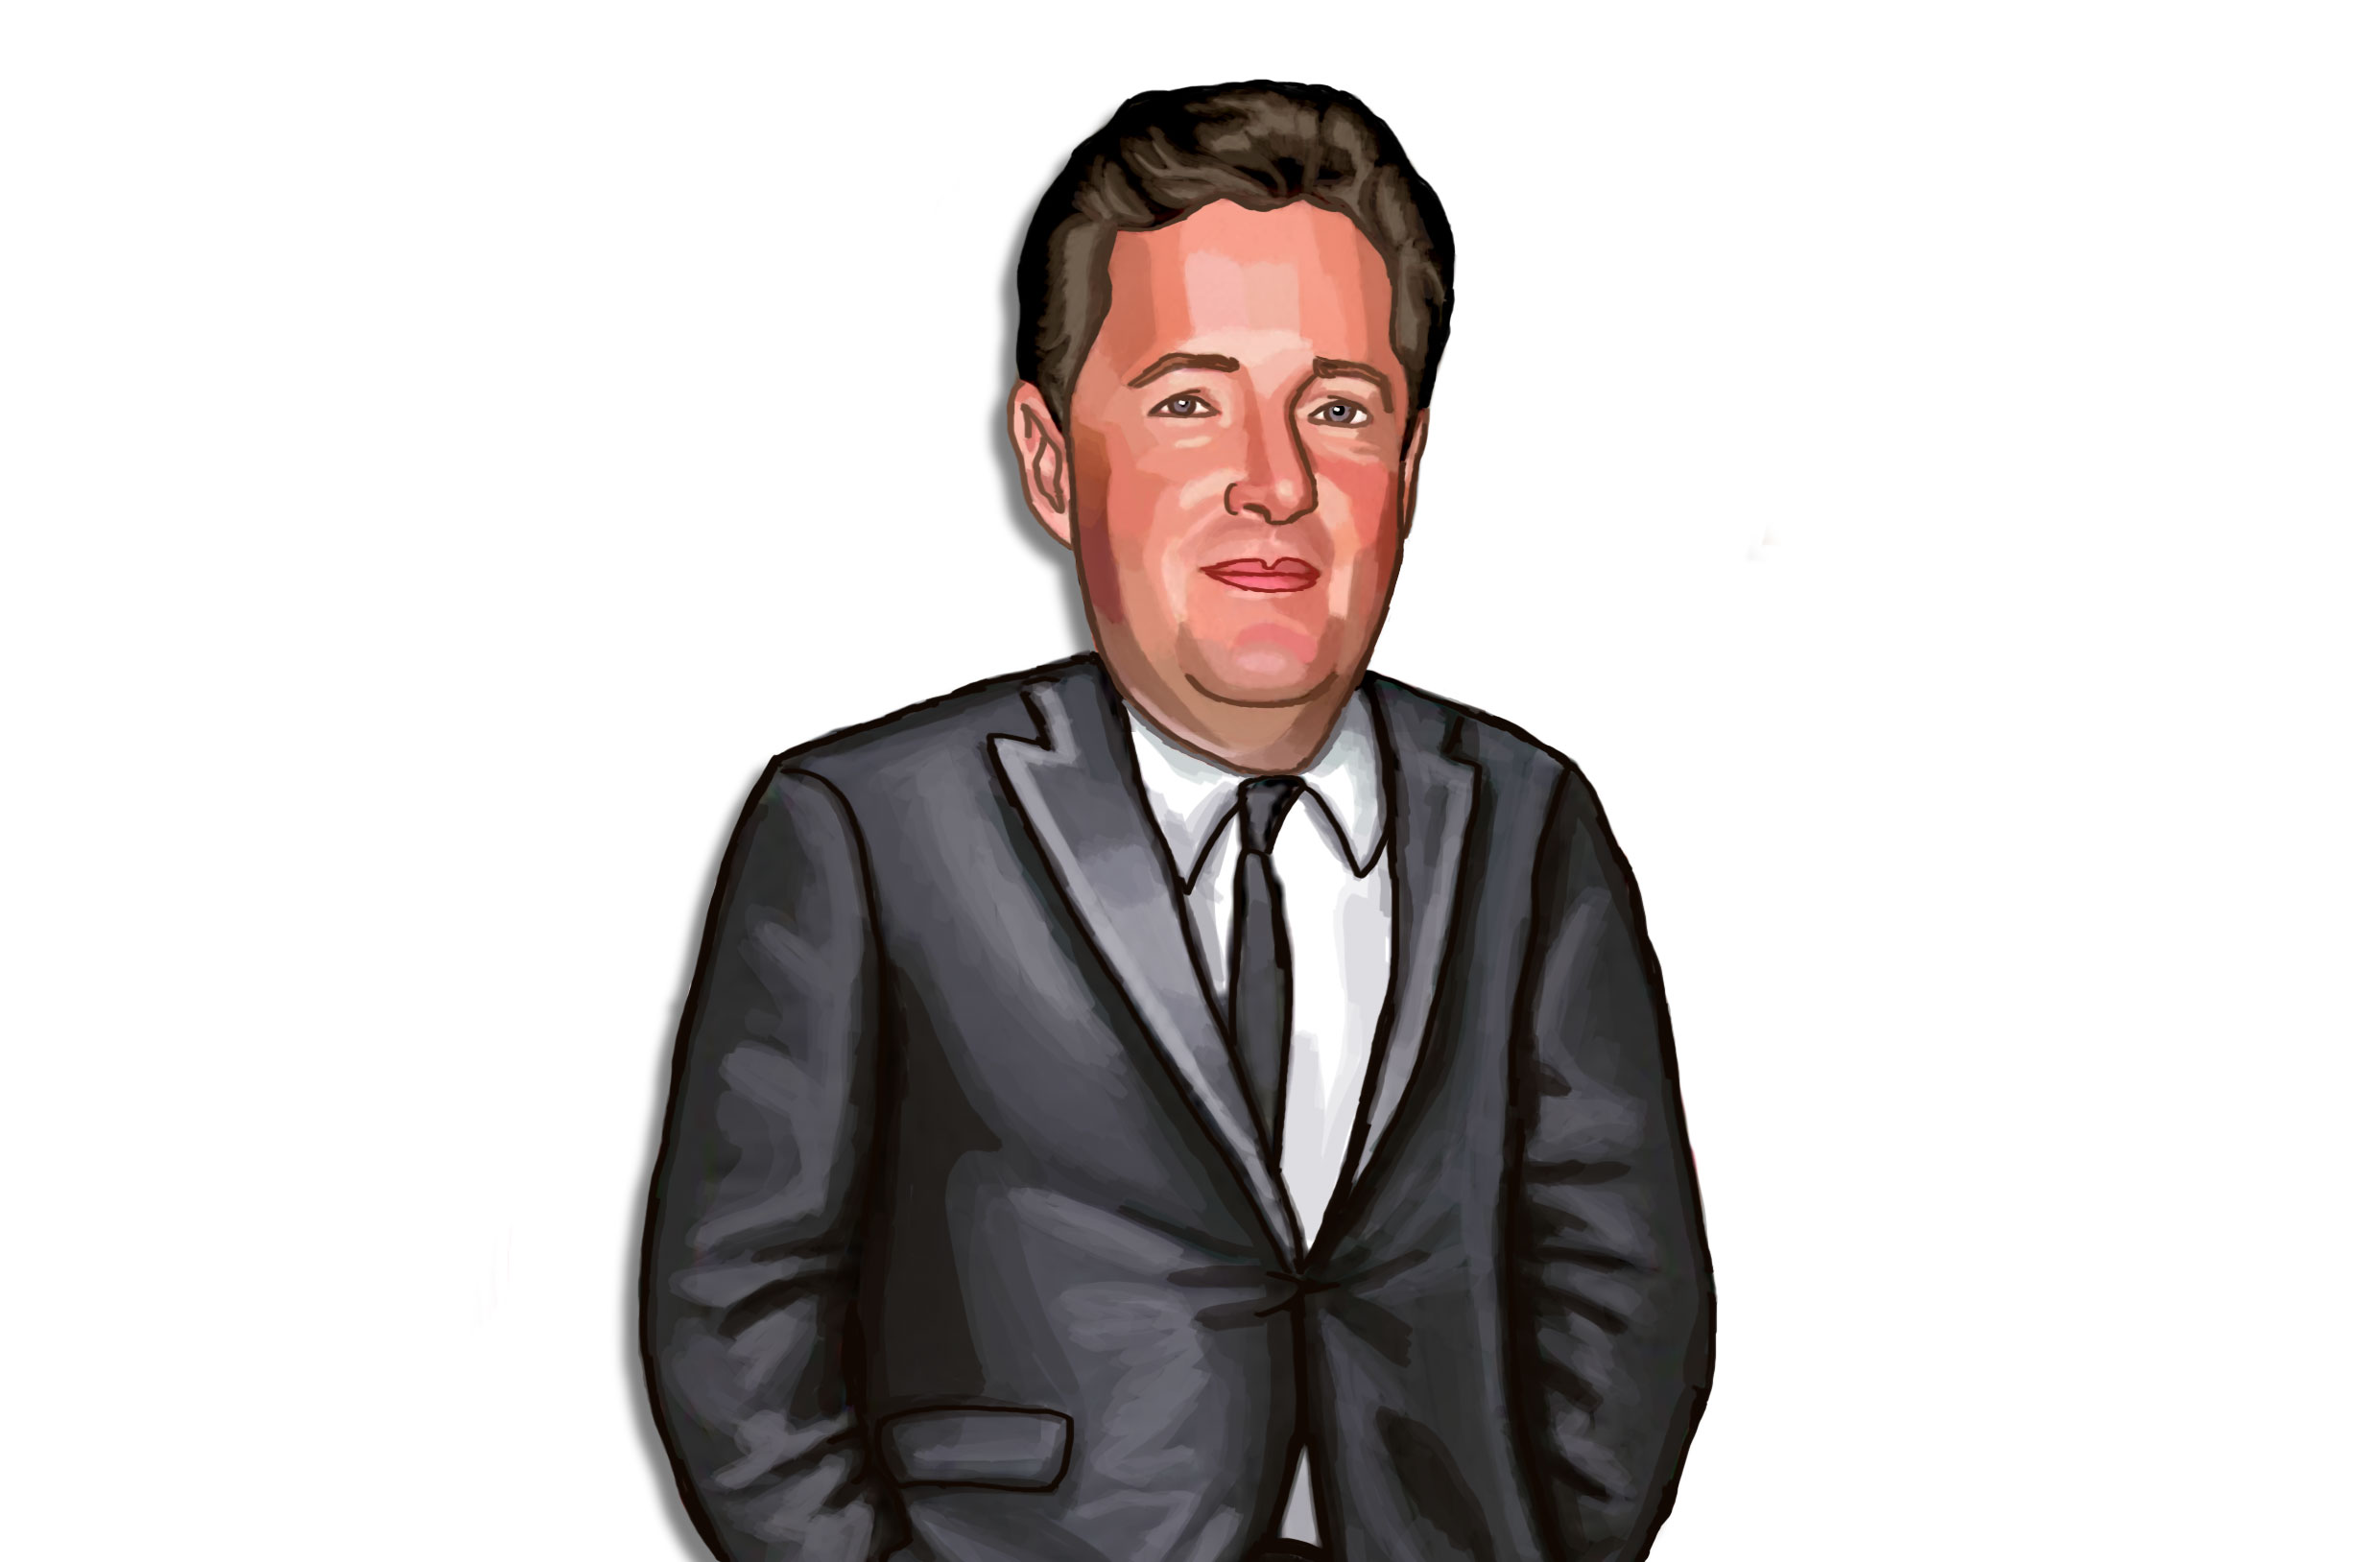 piers morgan - photo #25